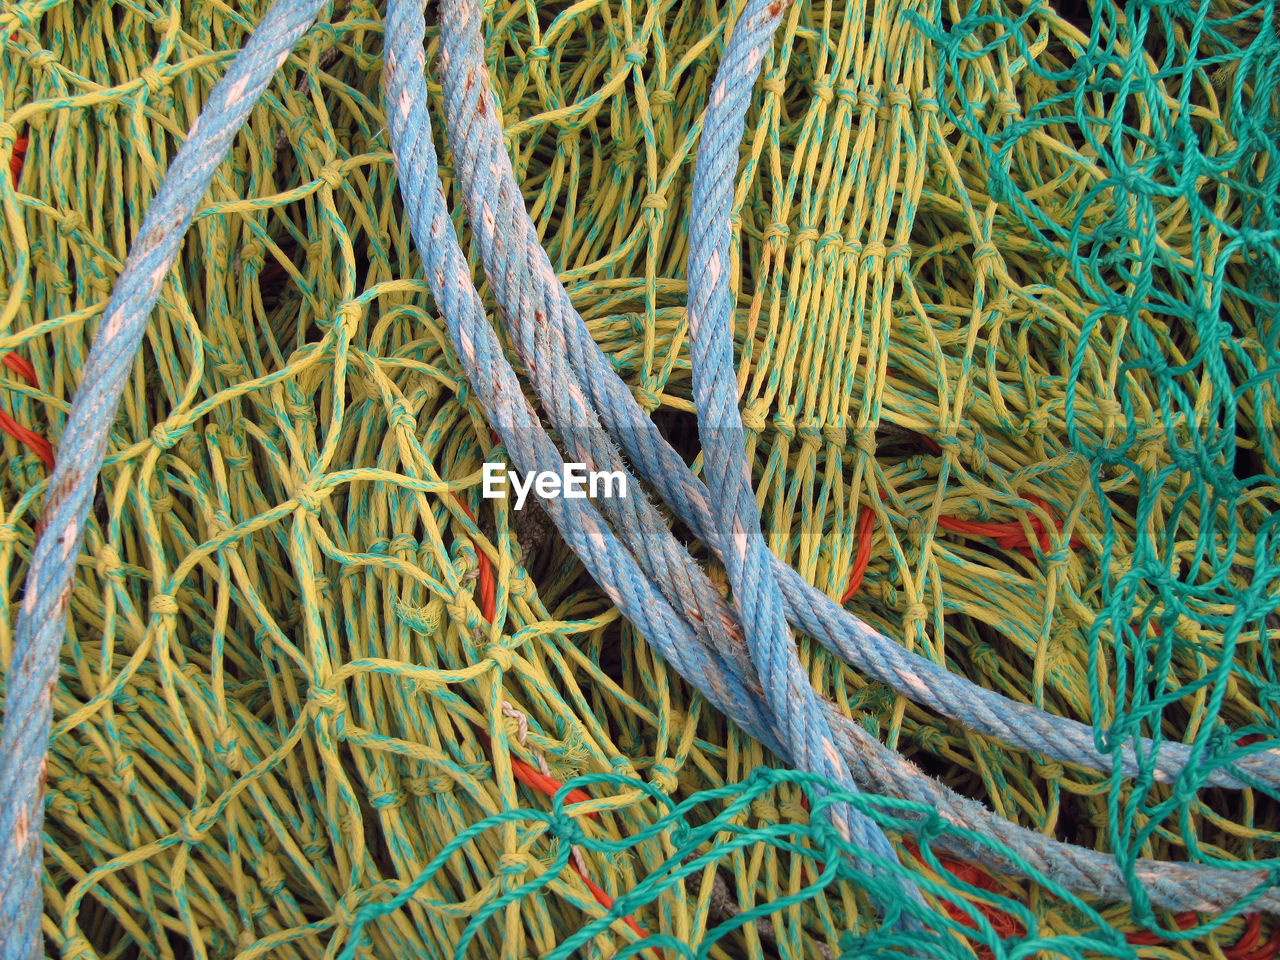 High Angle View Of Rope On Fishing Net